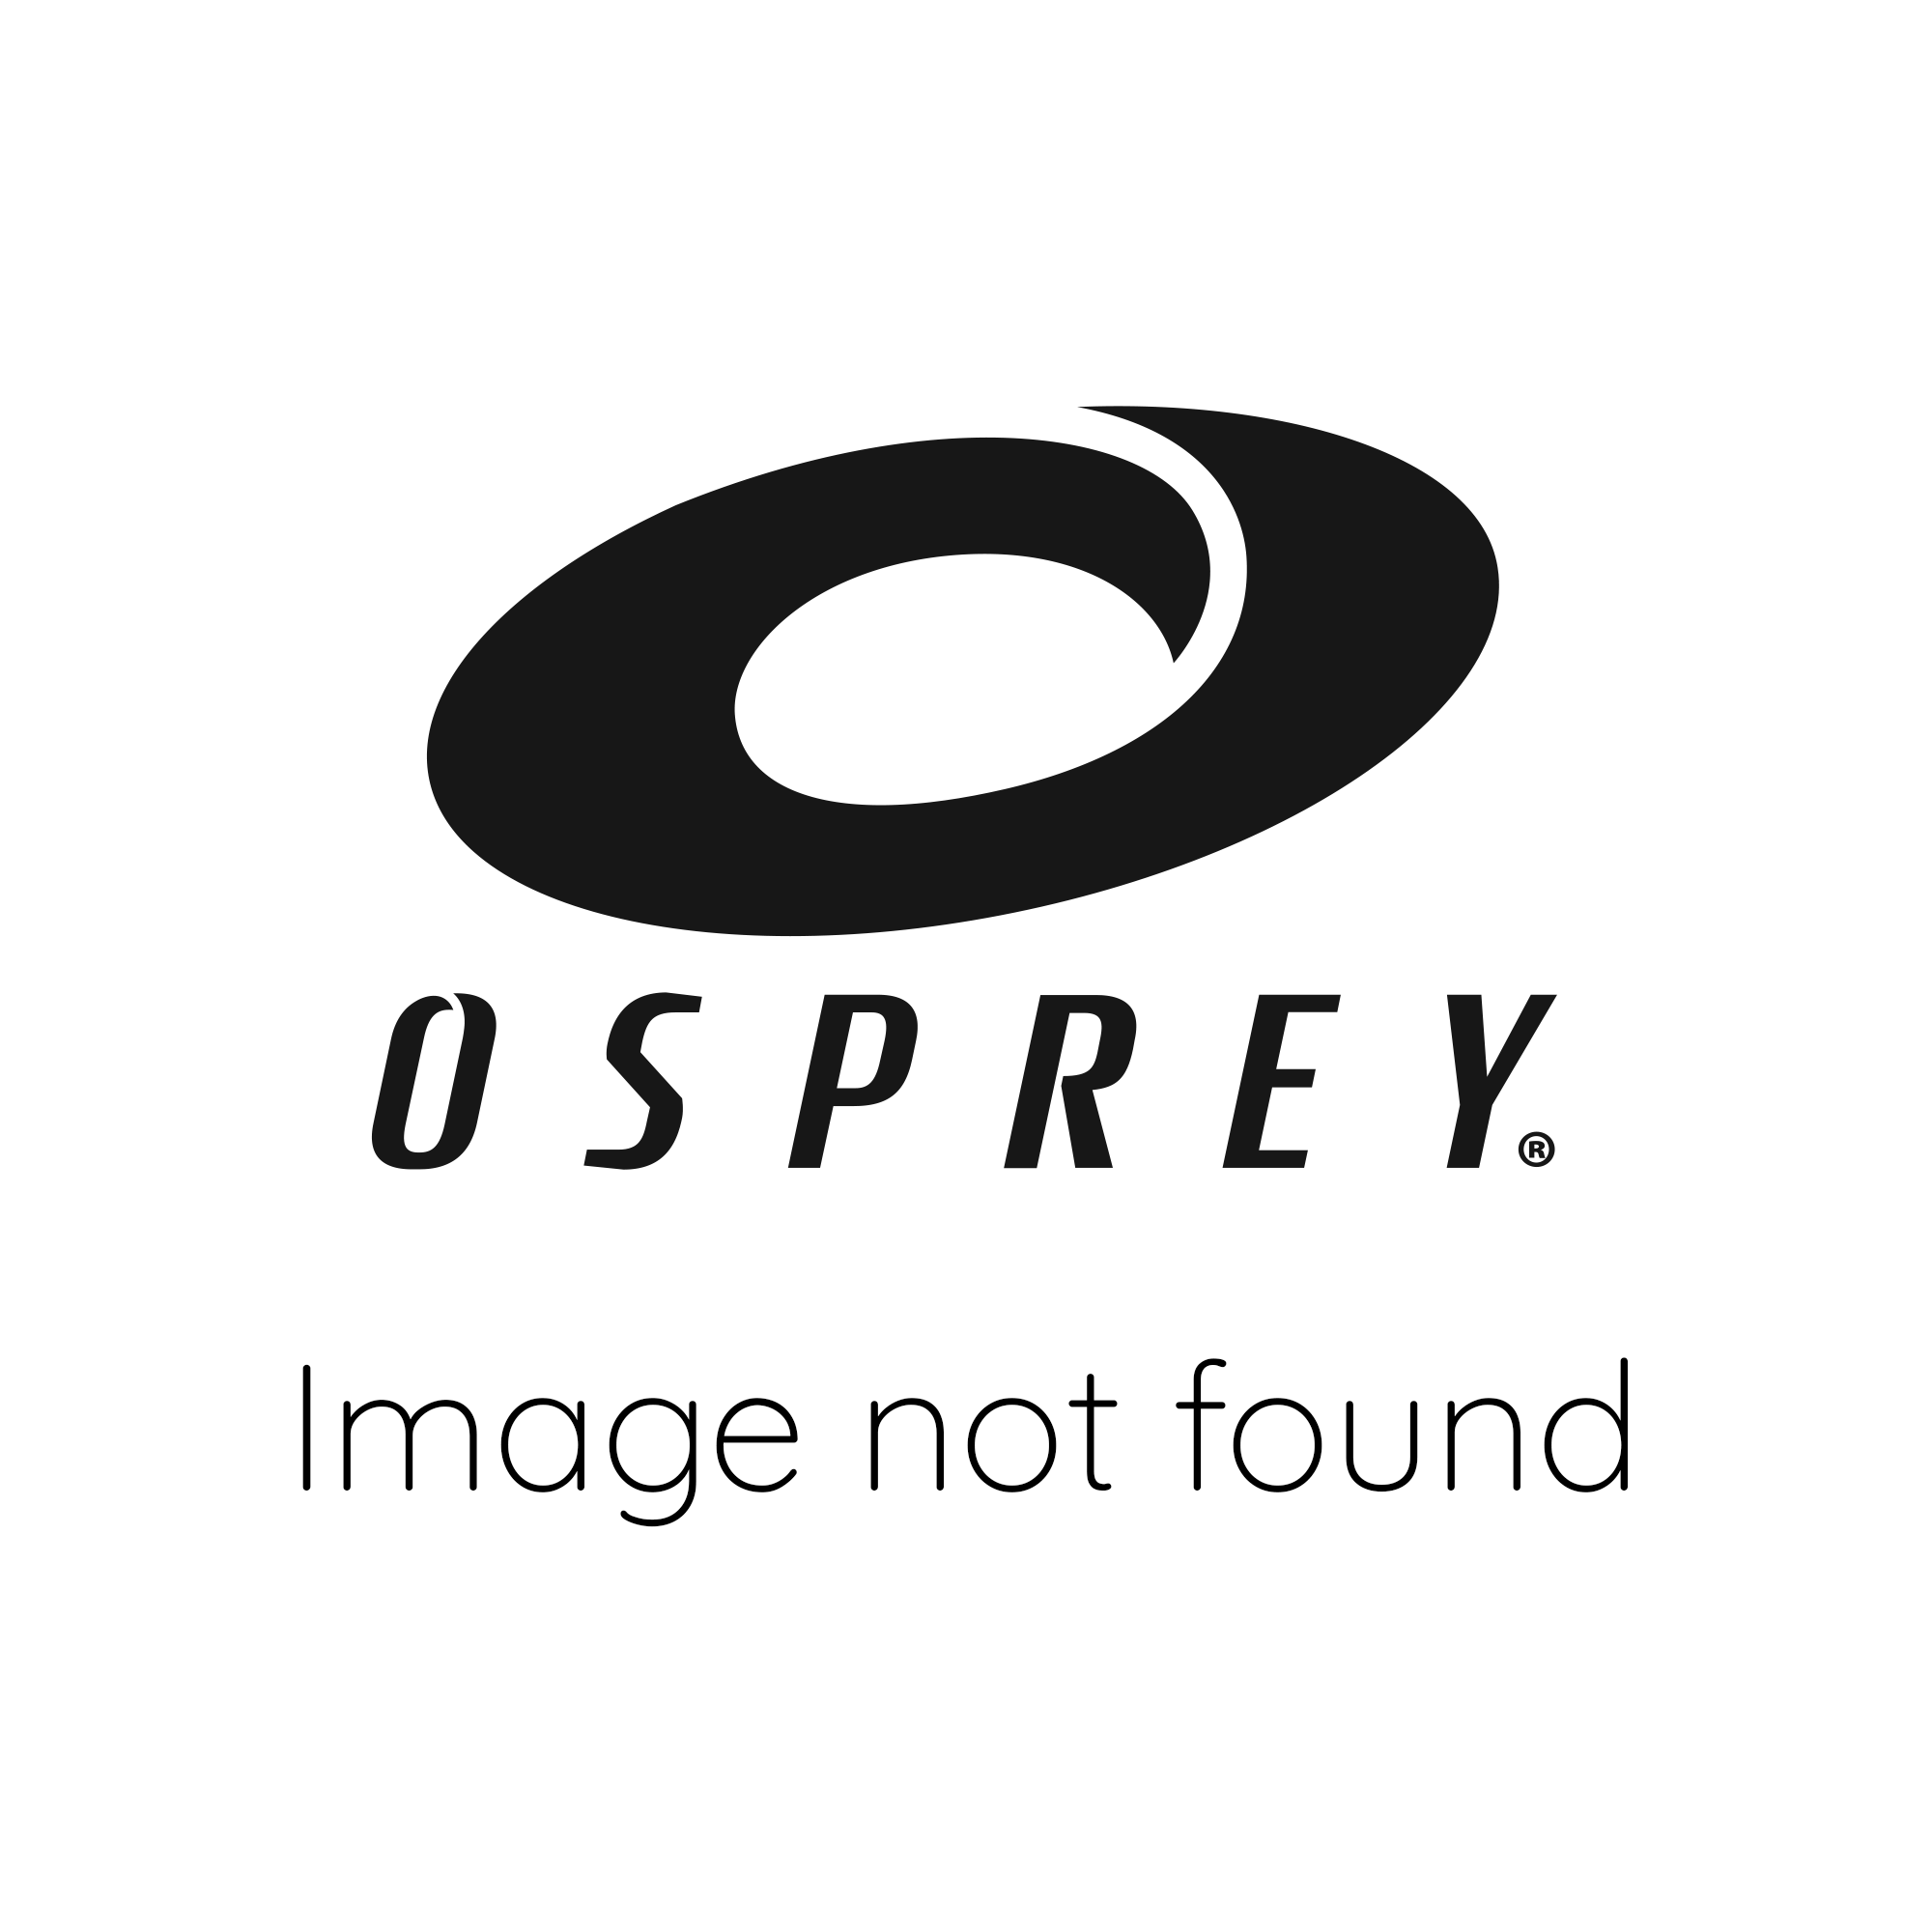 Osprey Womens 5mm Origin Full Length Wetsuit - Black